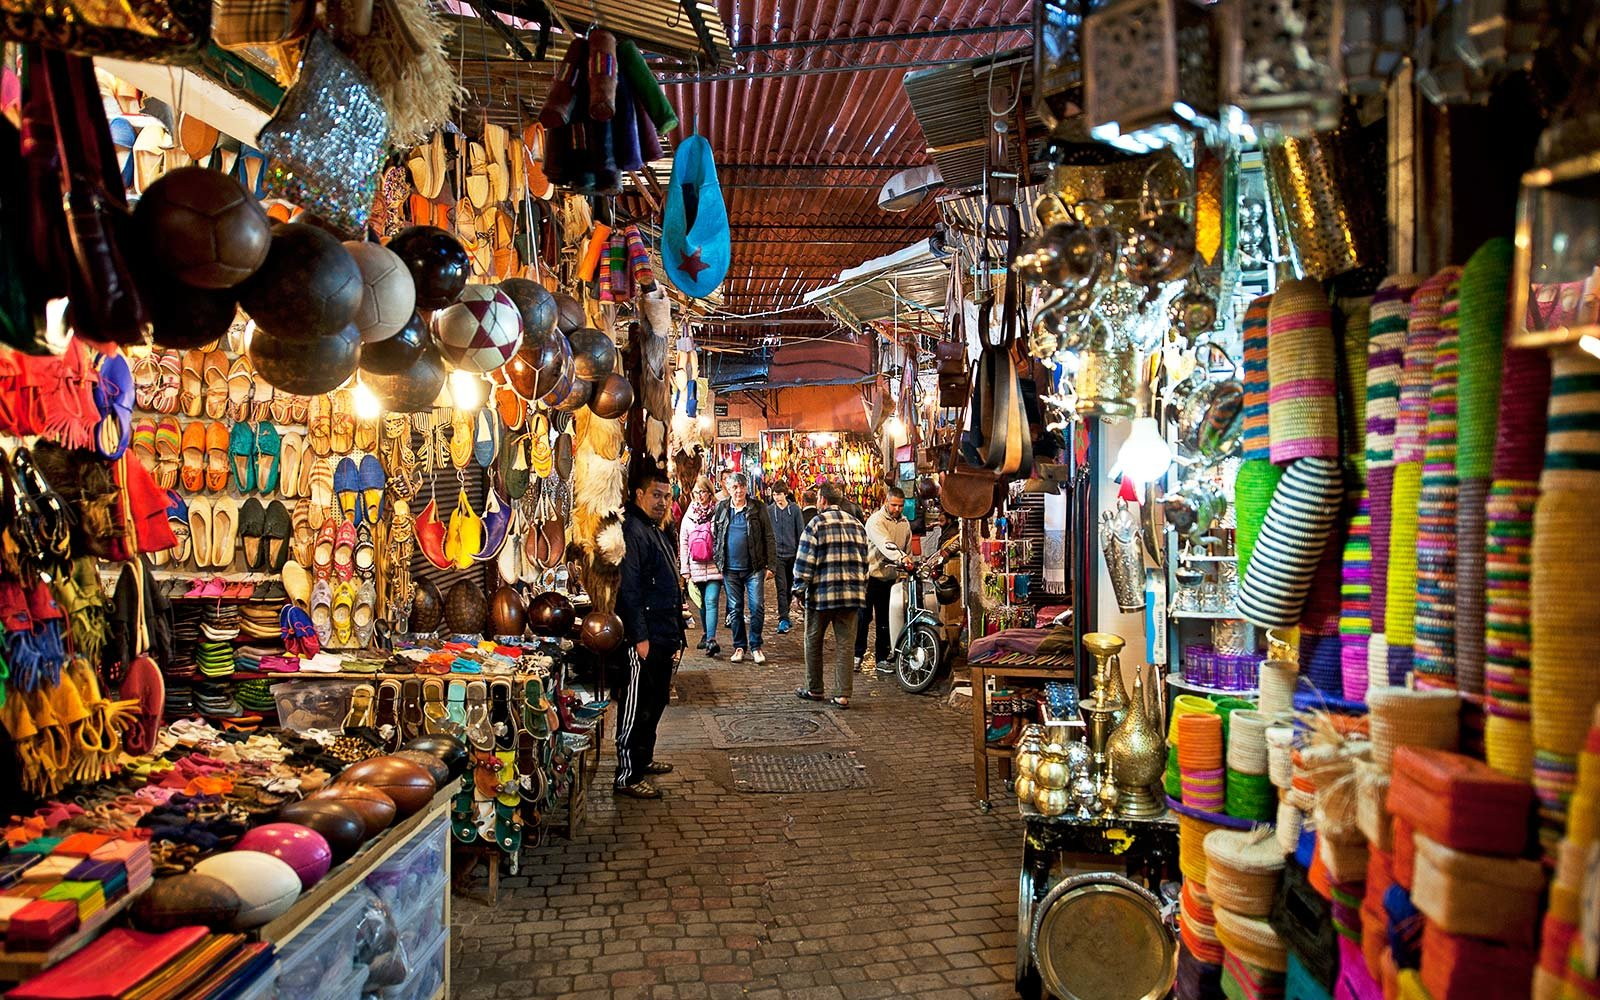 Moorish bazaar and narrow alleyways of the Souk, with a view into the market areas showing the incredible variety of wares for sale, Marrakech, Morocco